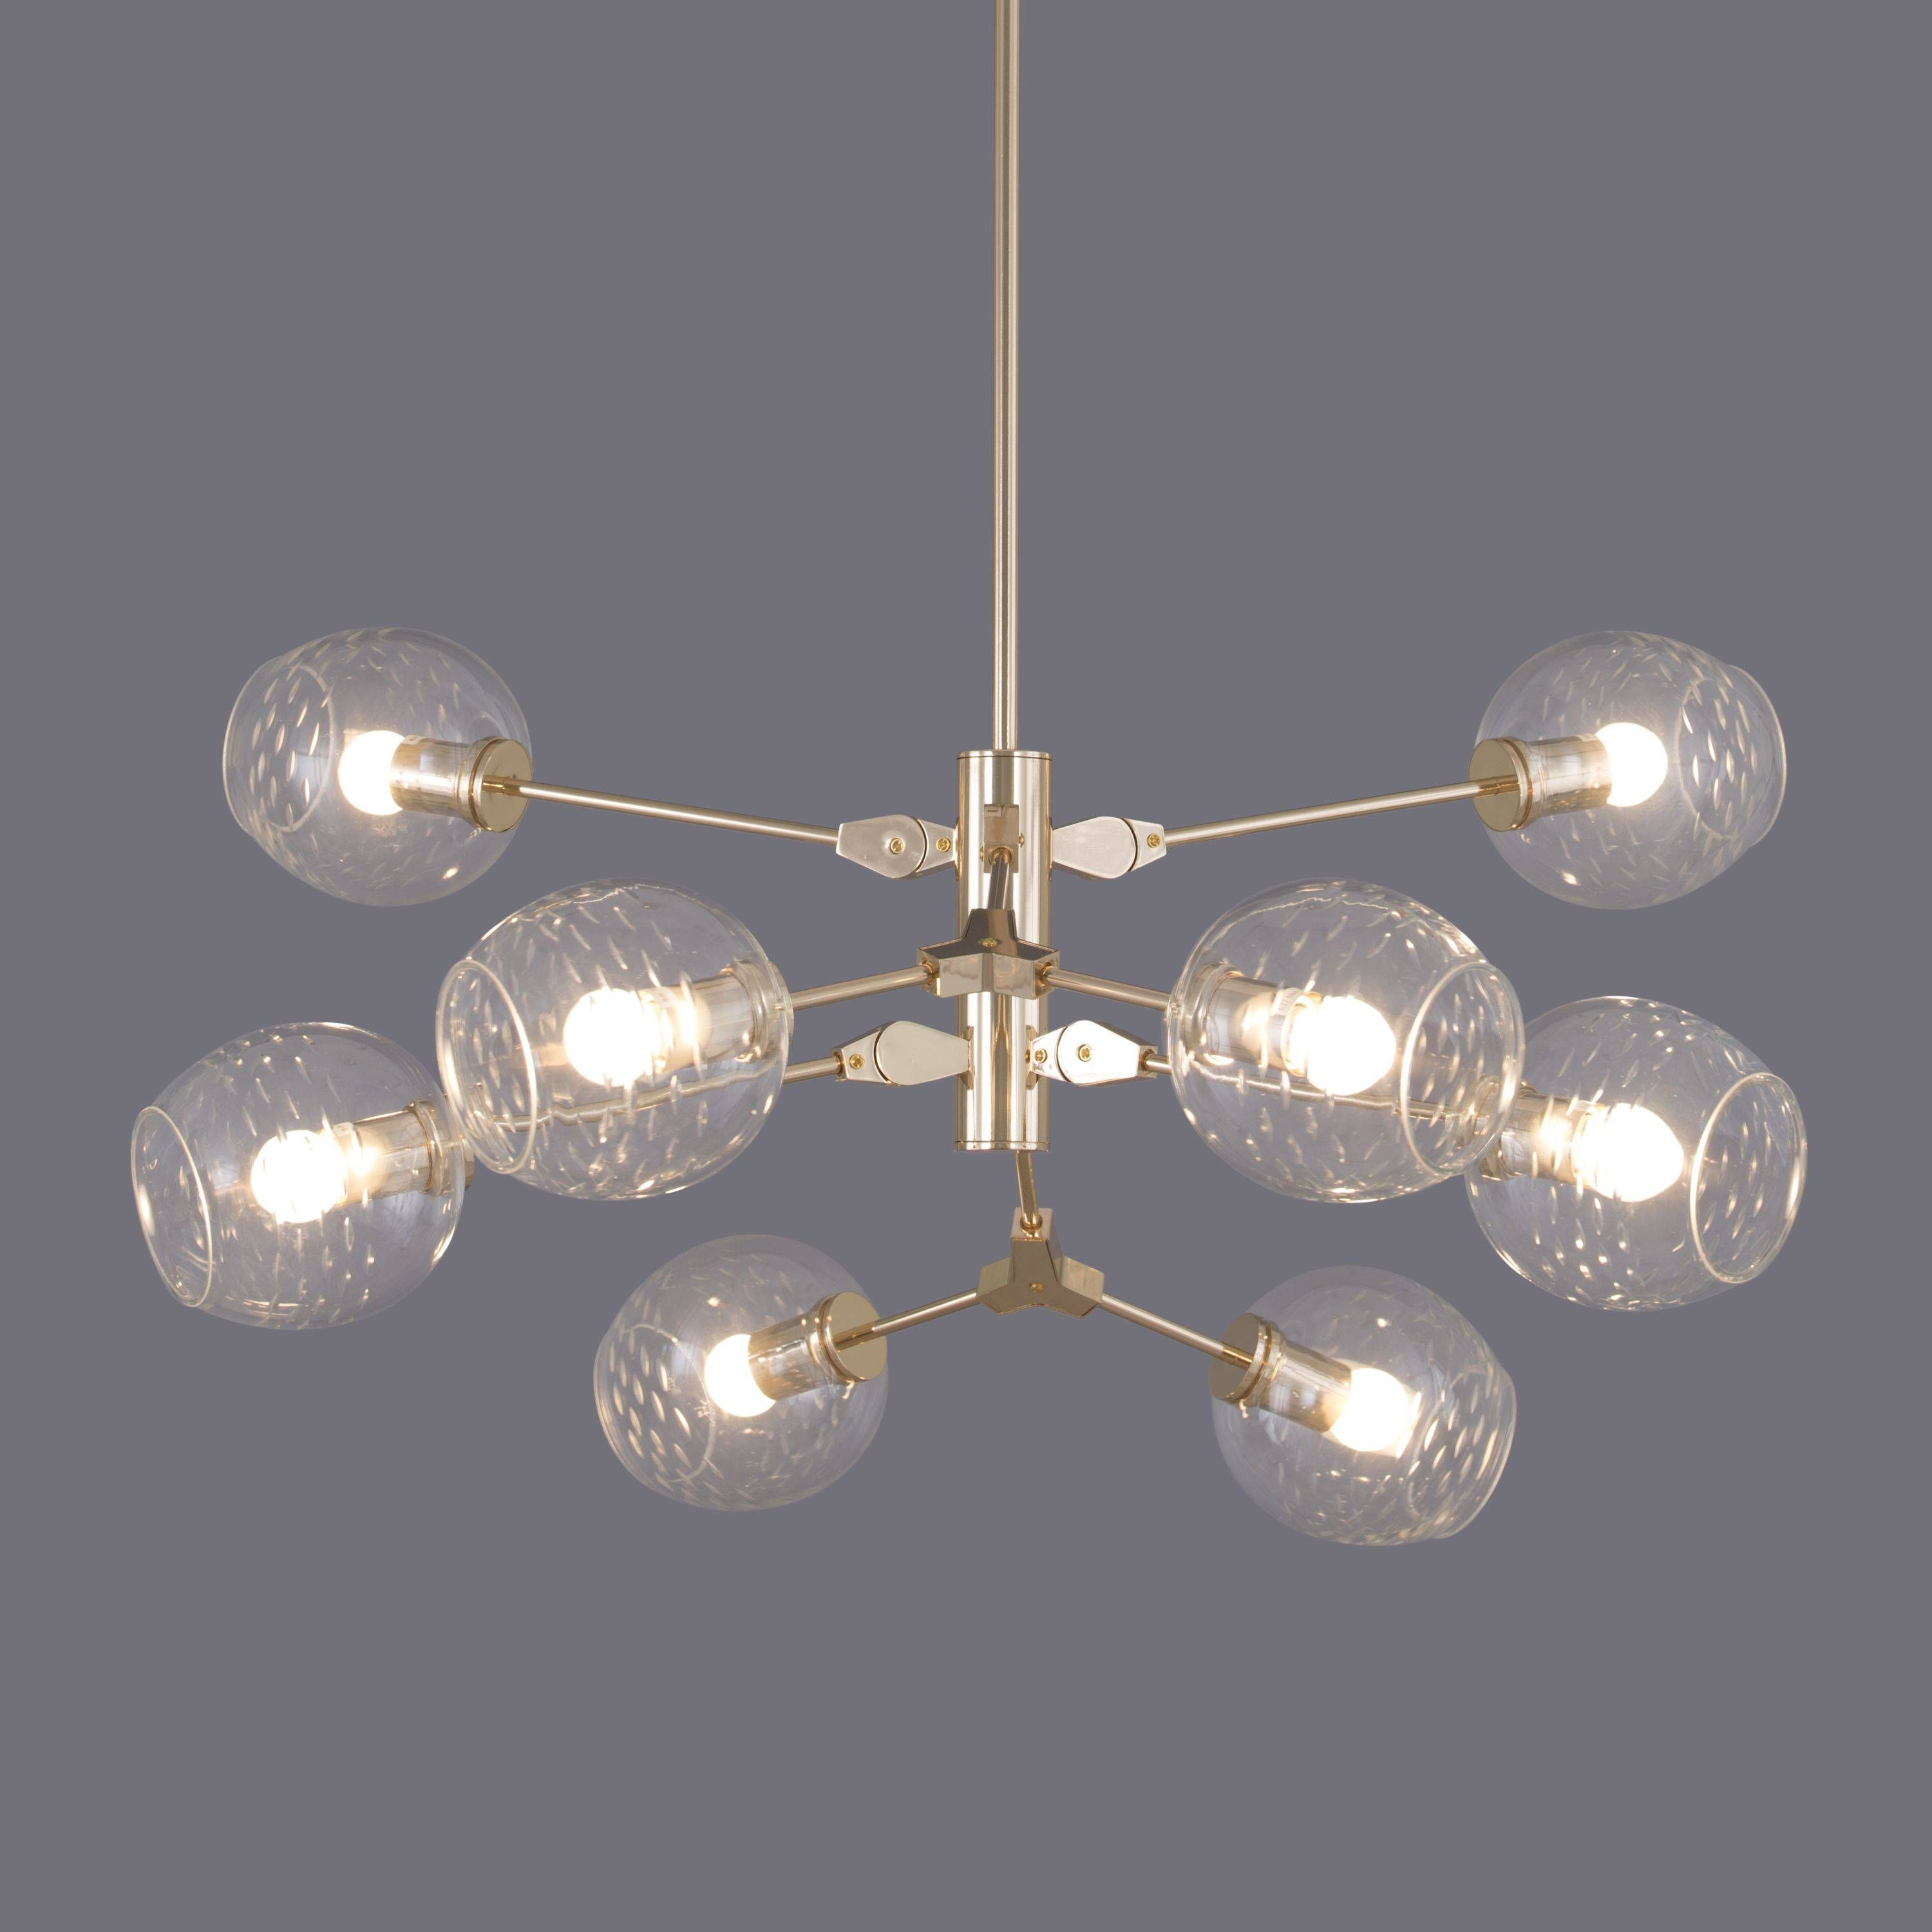 Keeper Of My Heart Buy Premium Chandeliers Online In India At A Great Price From Indias Top Home Decorative Lighting Brand White Teak Buy Table Lamps